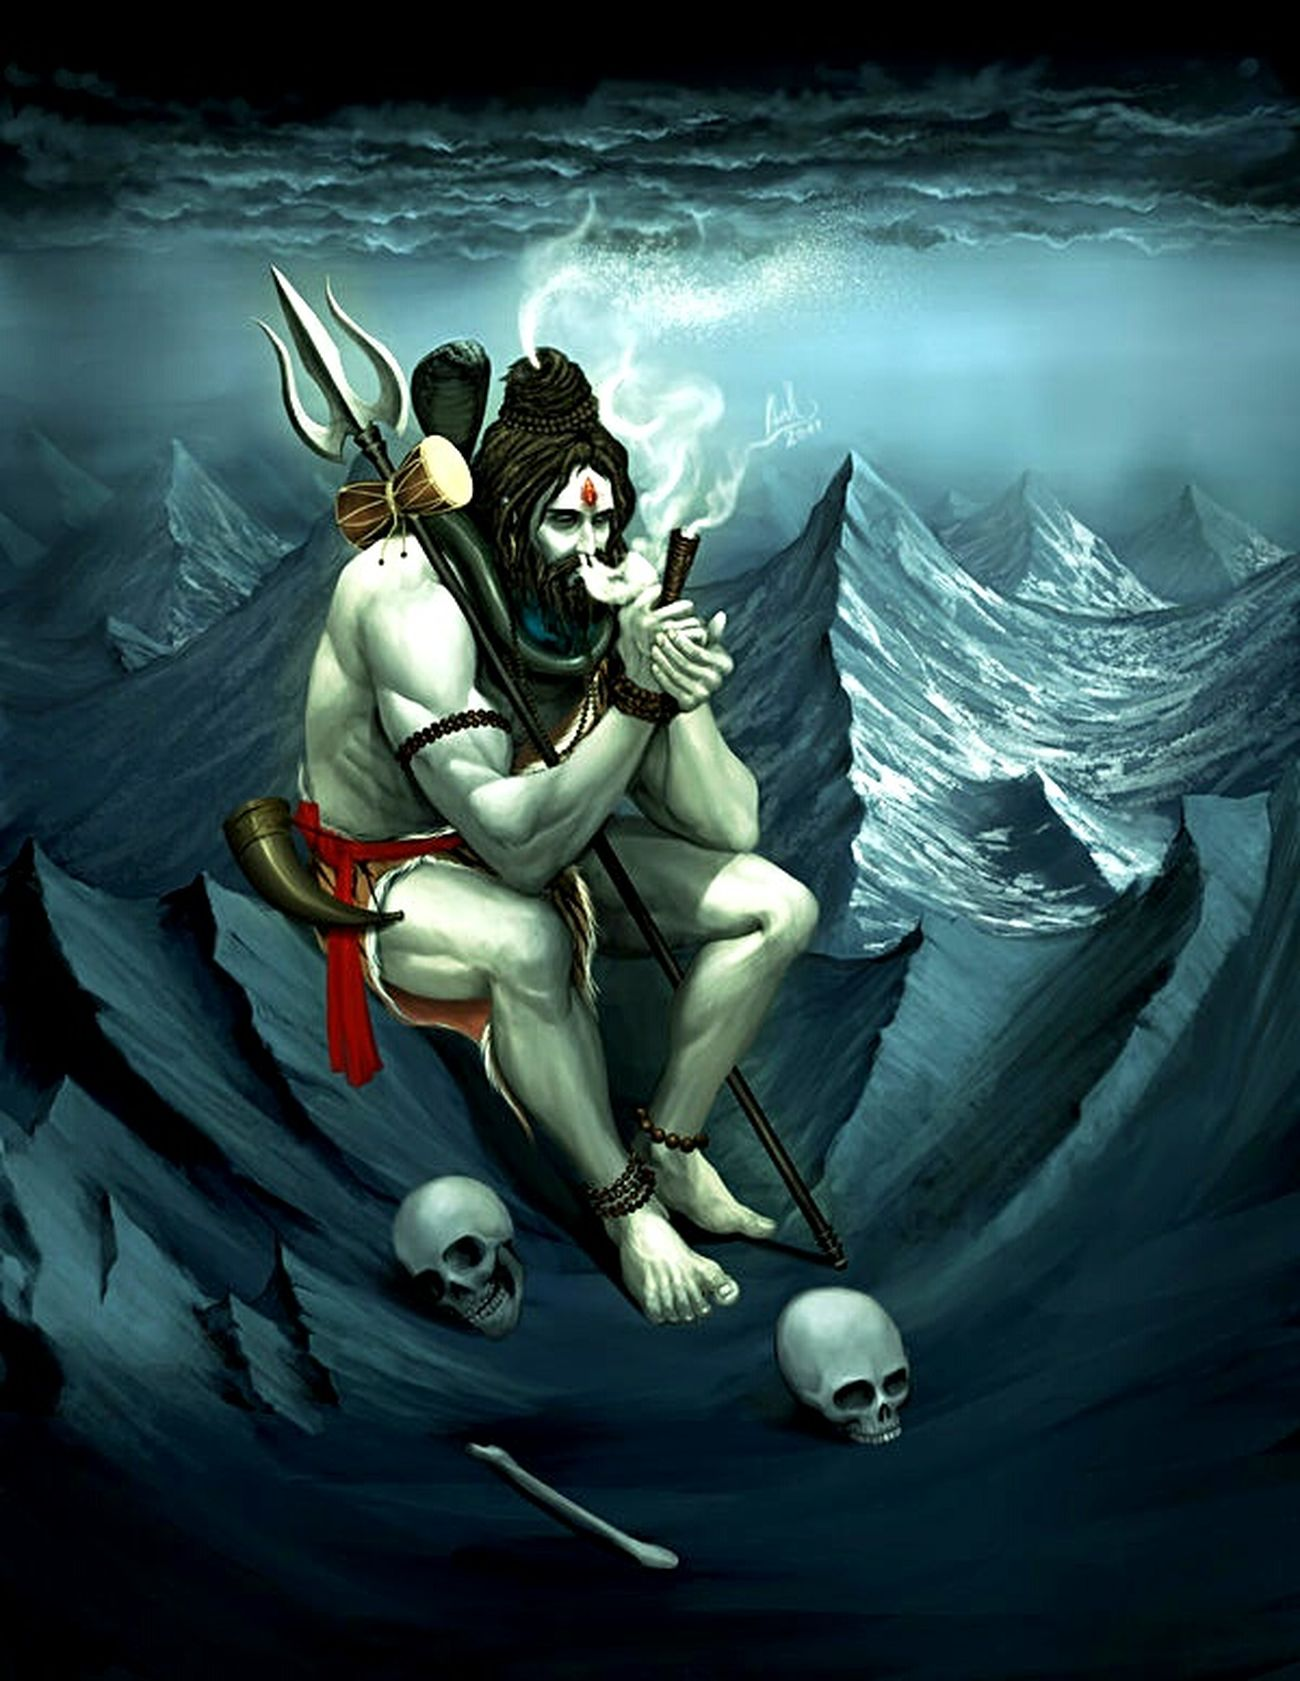 Lord Shiva Bholenath Mahadevan Nataraja Har Har Mahadeba The Destroyer Of Evil Smoking Weed